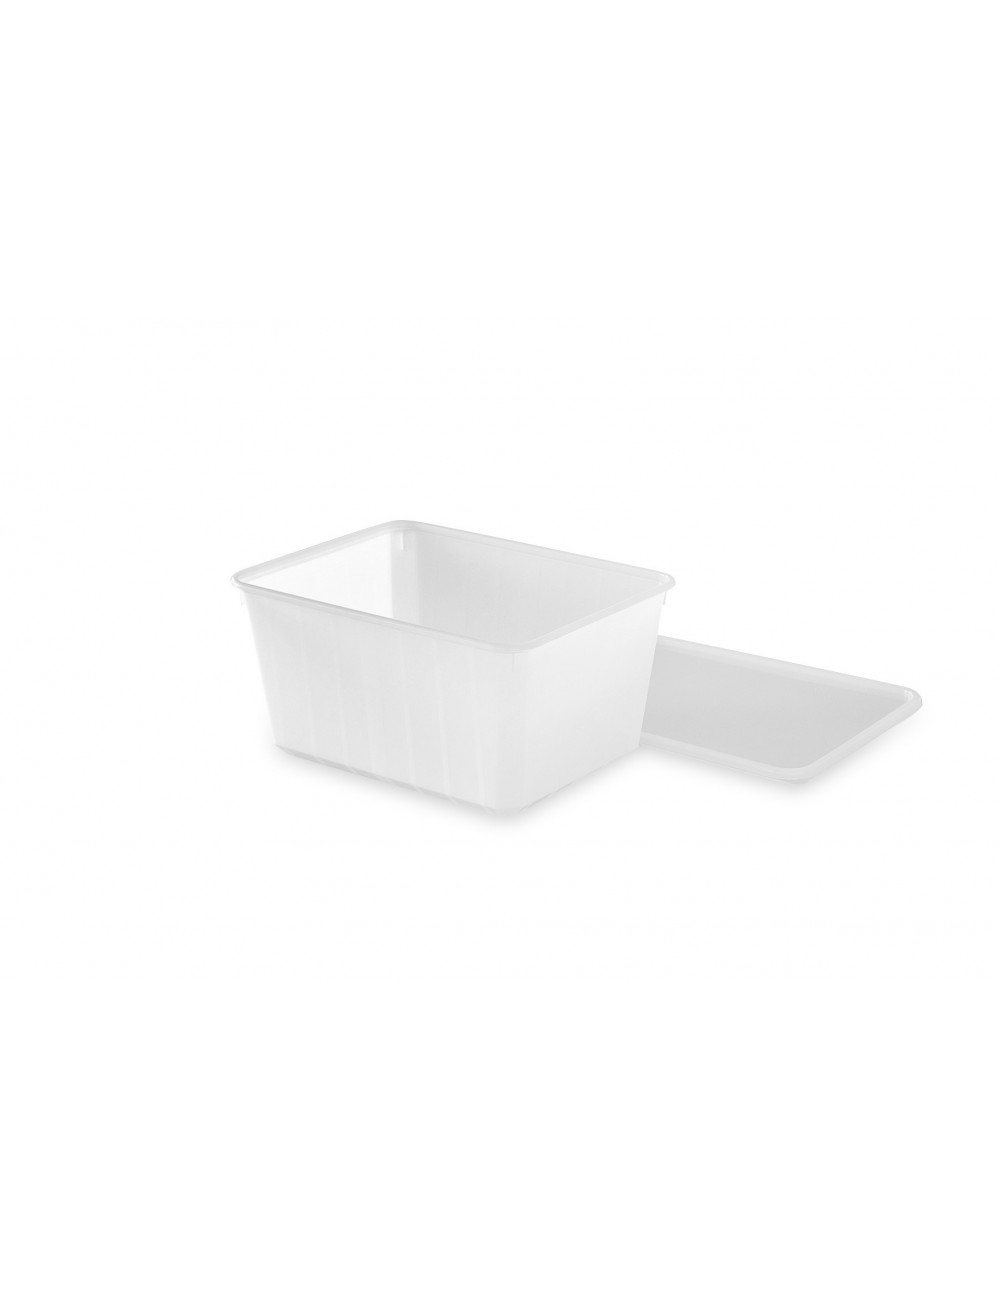 CARTY BOX - PLASTIC CONTAINER - 1800 mL